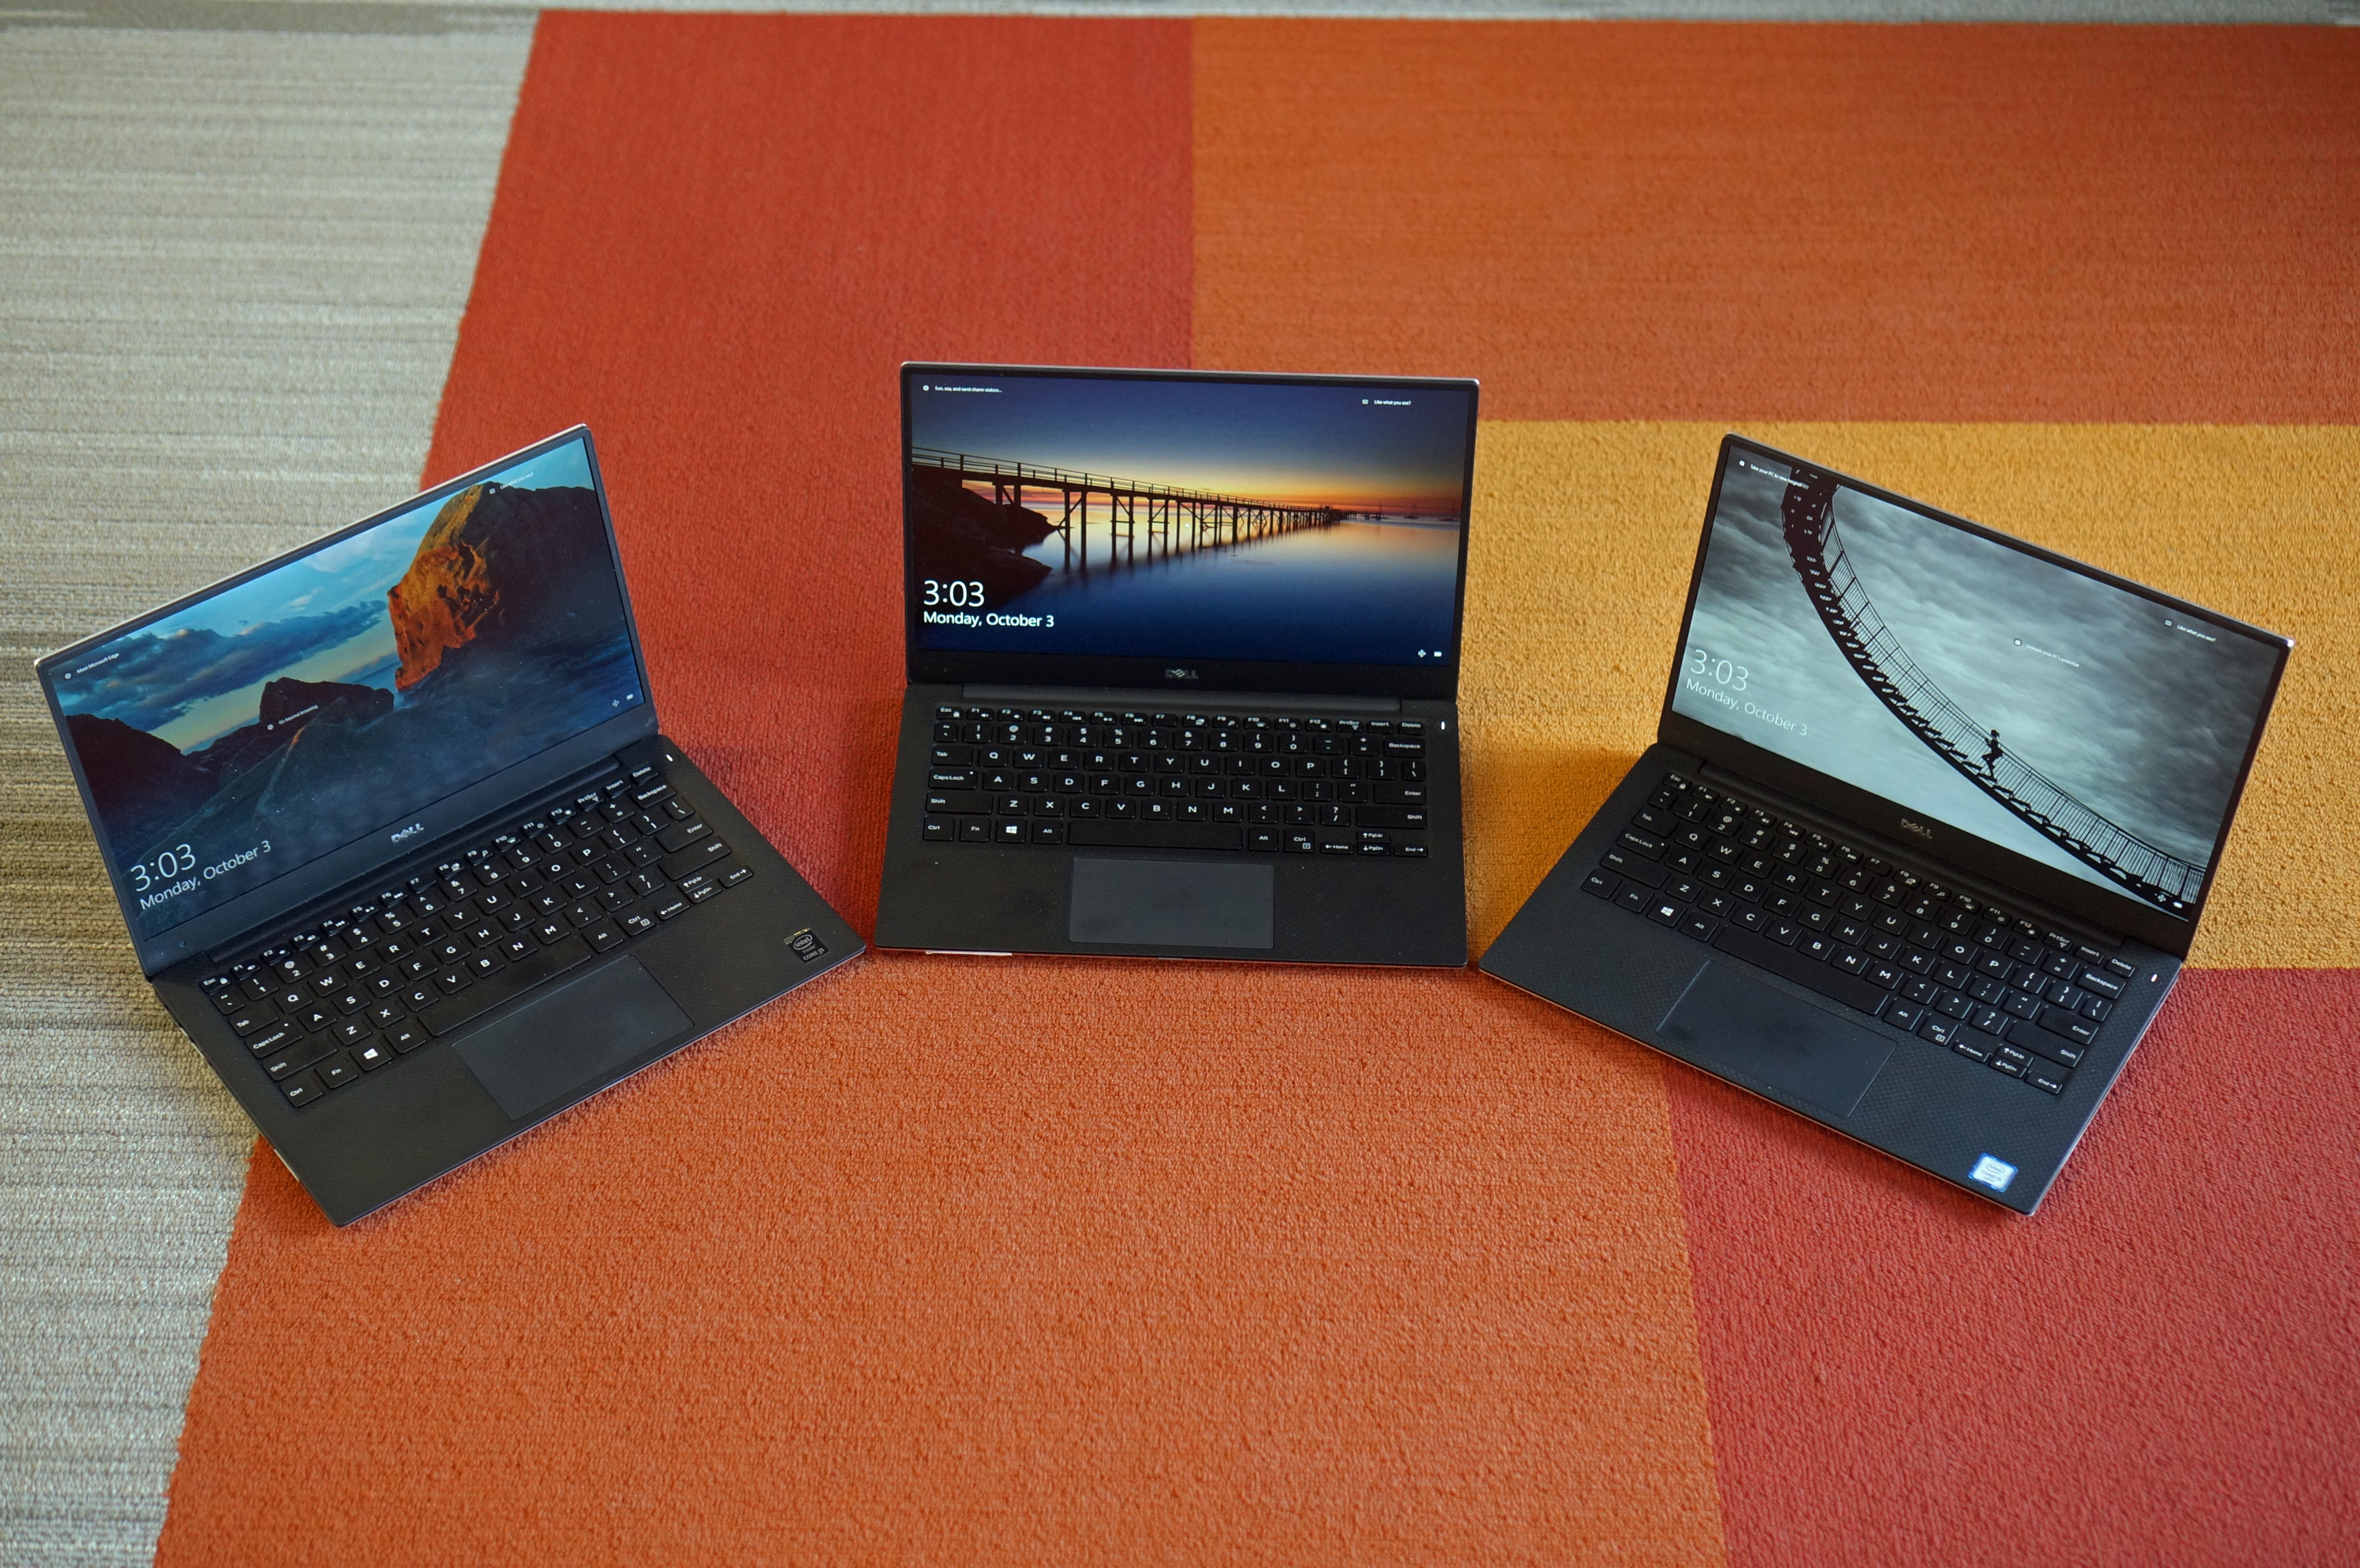 dell pc Dell is a synonymous brand when we talk about the laptops this american computer technology company is delivering best laptops in the names of many popular models - inspiron, latitude, vostro, alienware, and xps, each having its own significance.